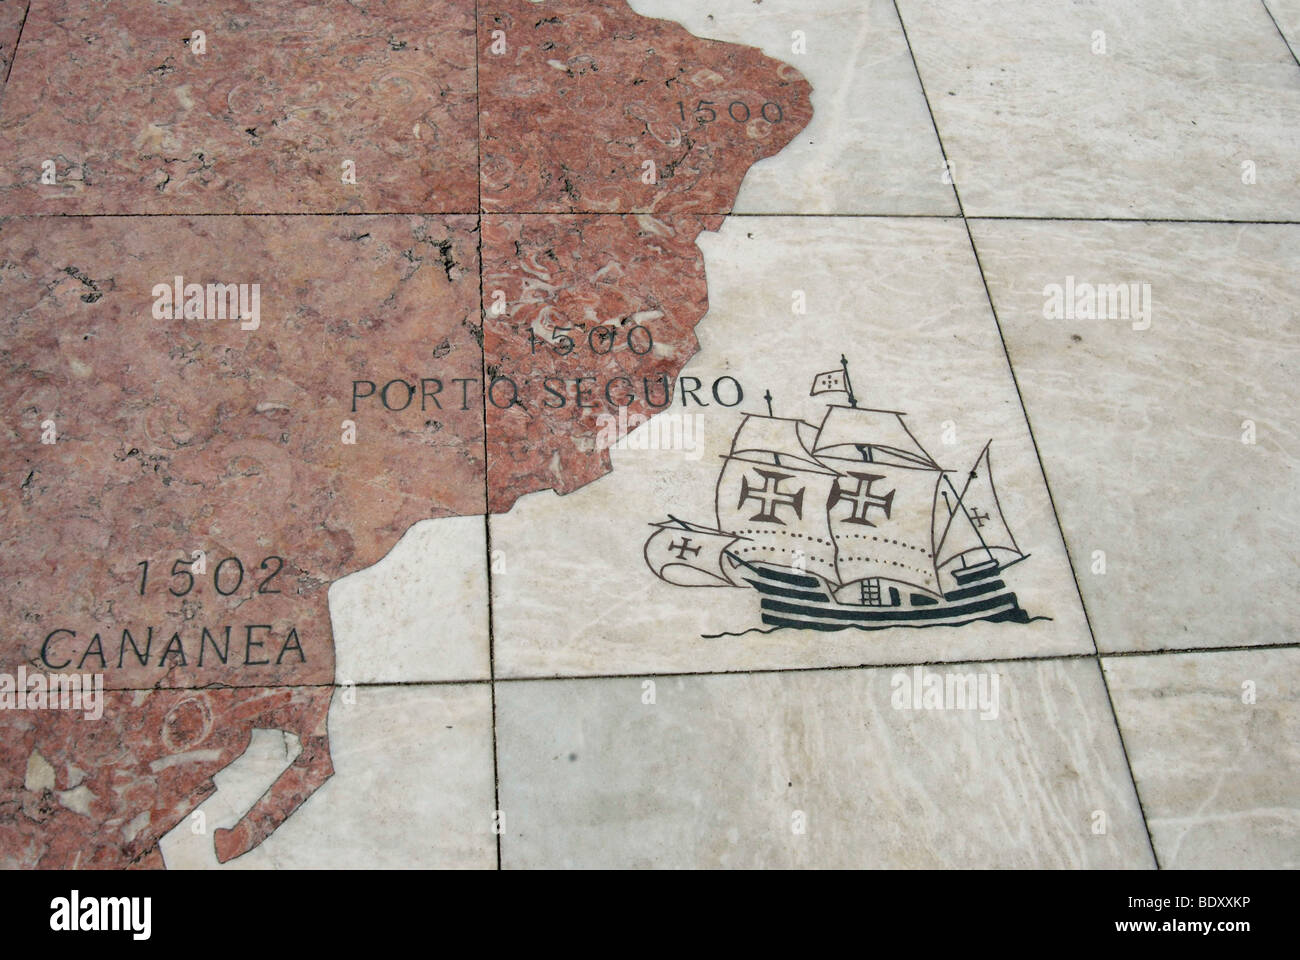 Discovery of Brazil in 1500 by the Portuguese, detail of a giant world map at the foot of the Monument to the Discoveries, - Stock Image